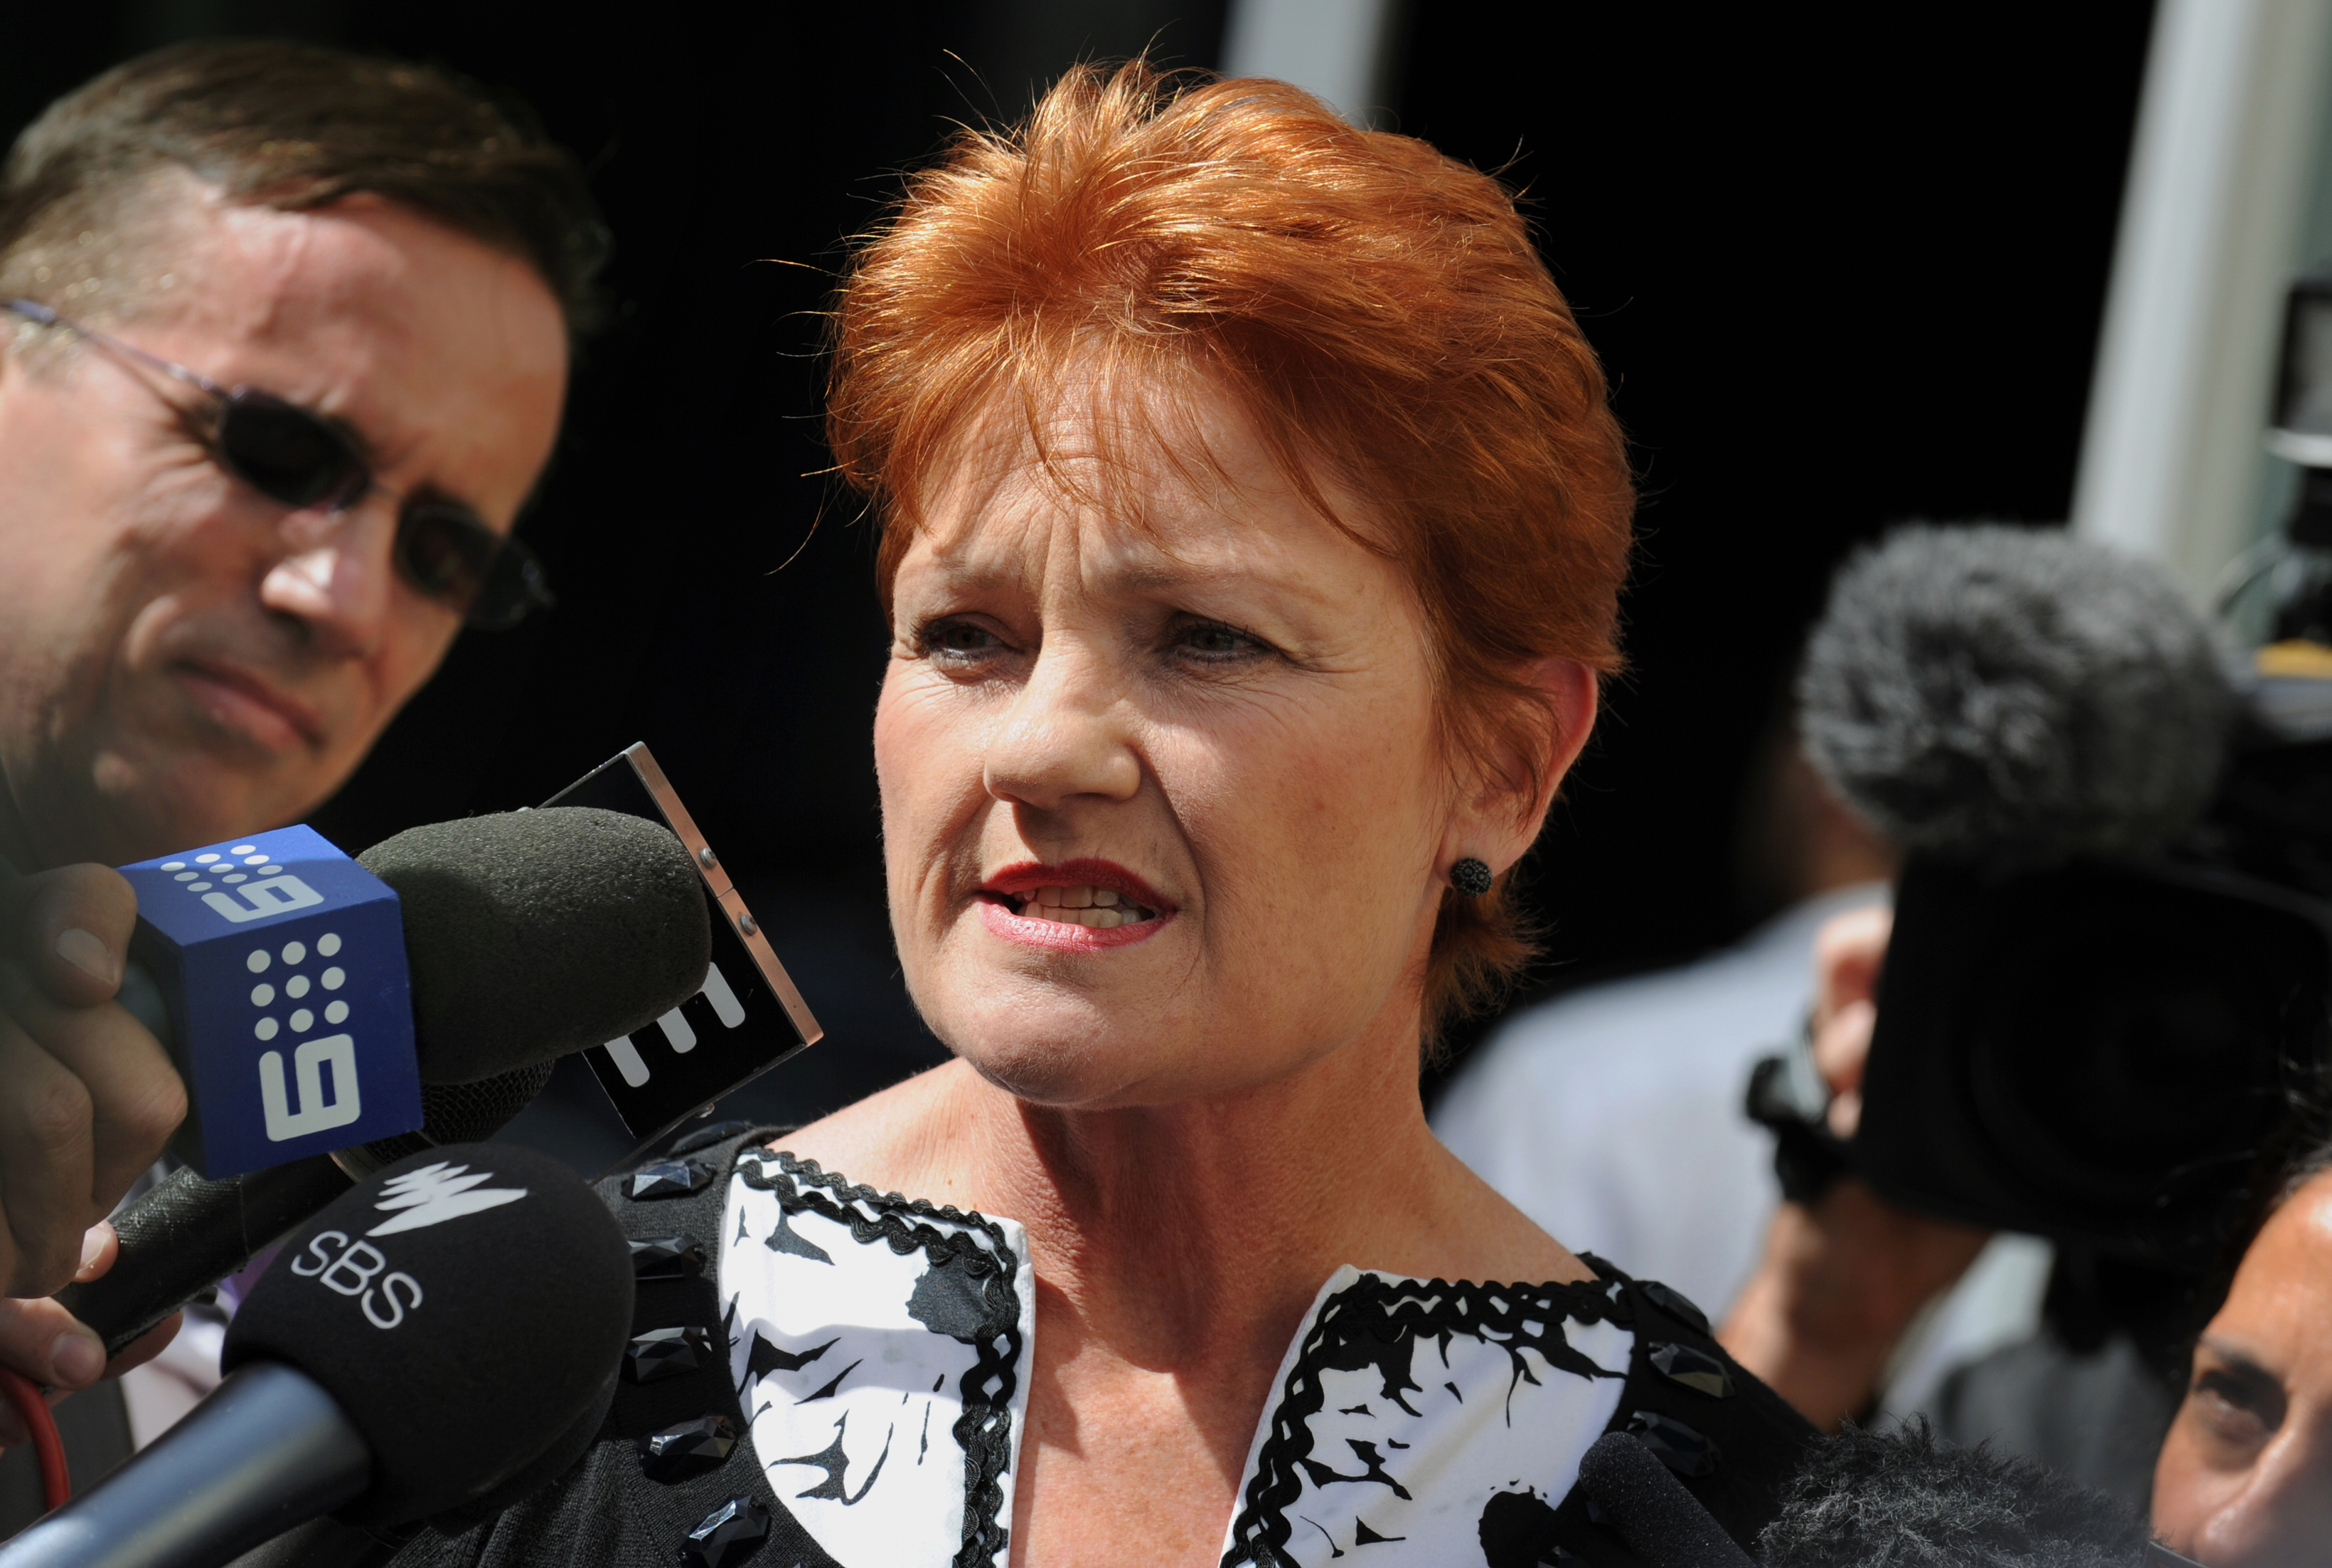 Australian politician Pauline Hanson speaks to the media in Sydney on April 12, 2011, after narrowly failing in her bid to win a seat in the New South Wales parliament